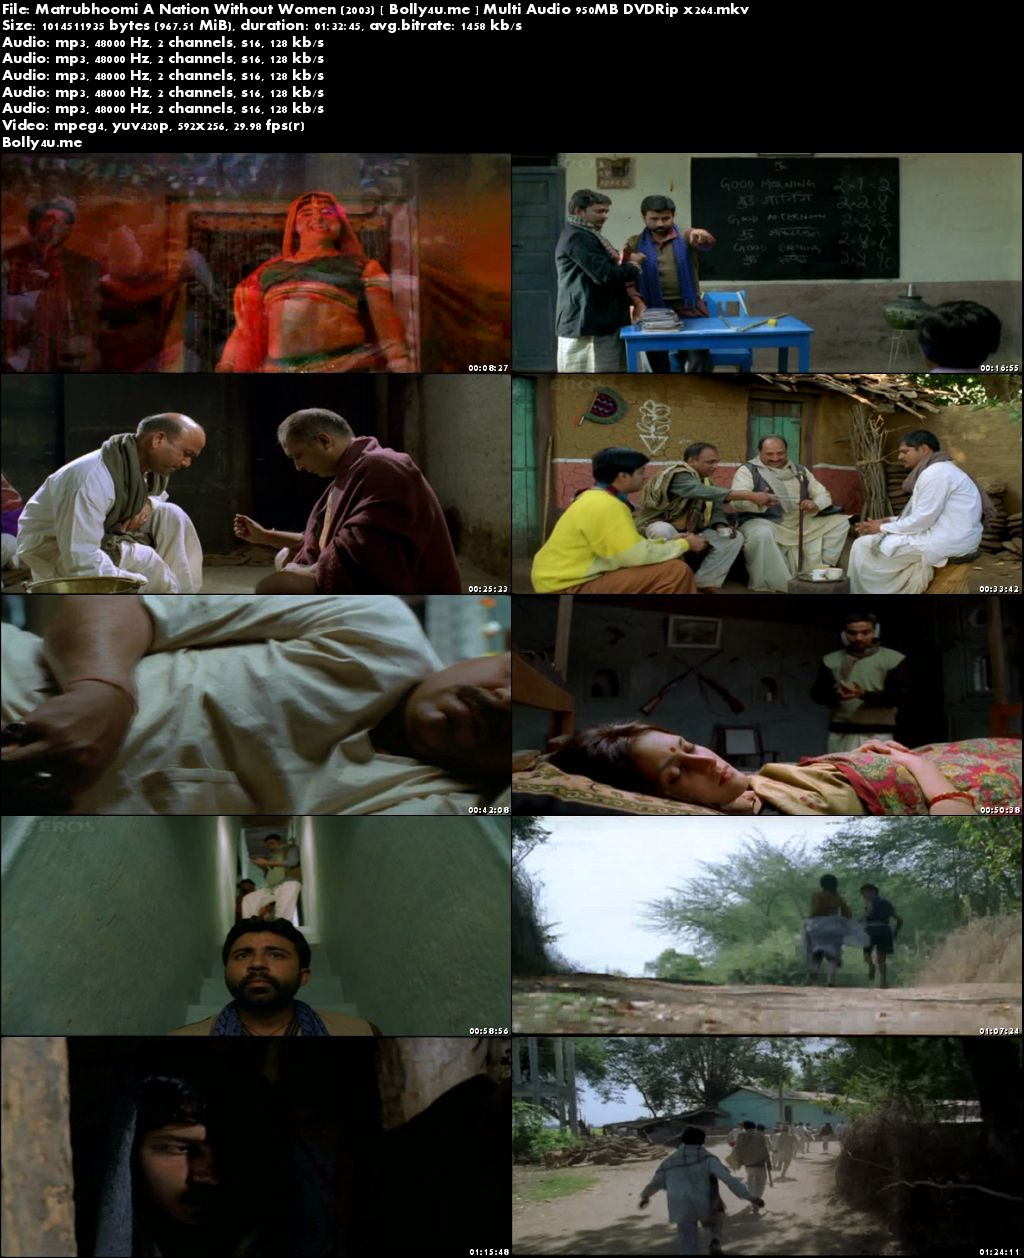 Matrubhoomi A Nation Without Women 2003 DVDRip 950MB Multi Audio Download